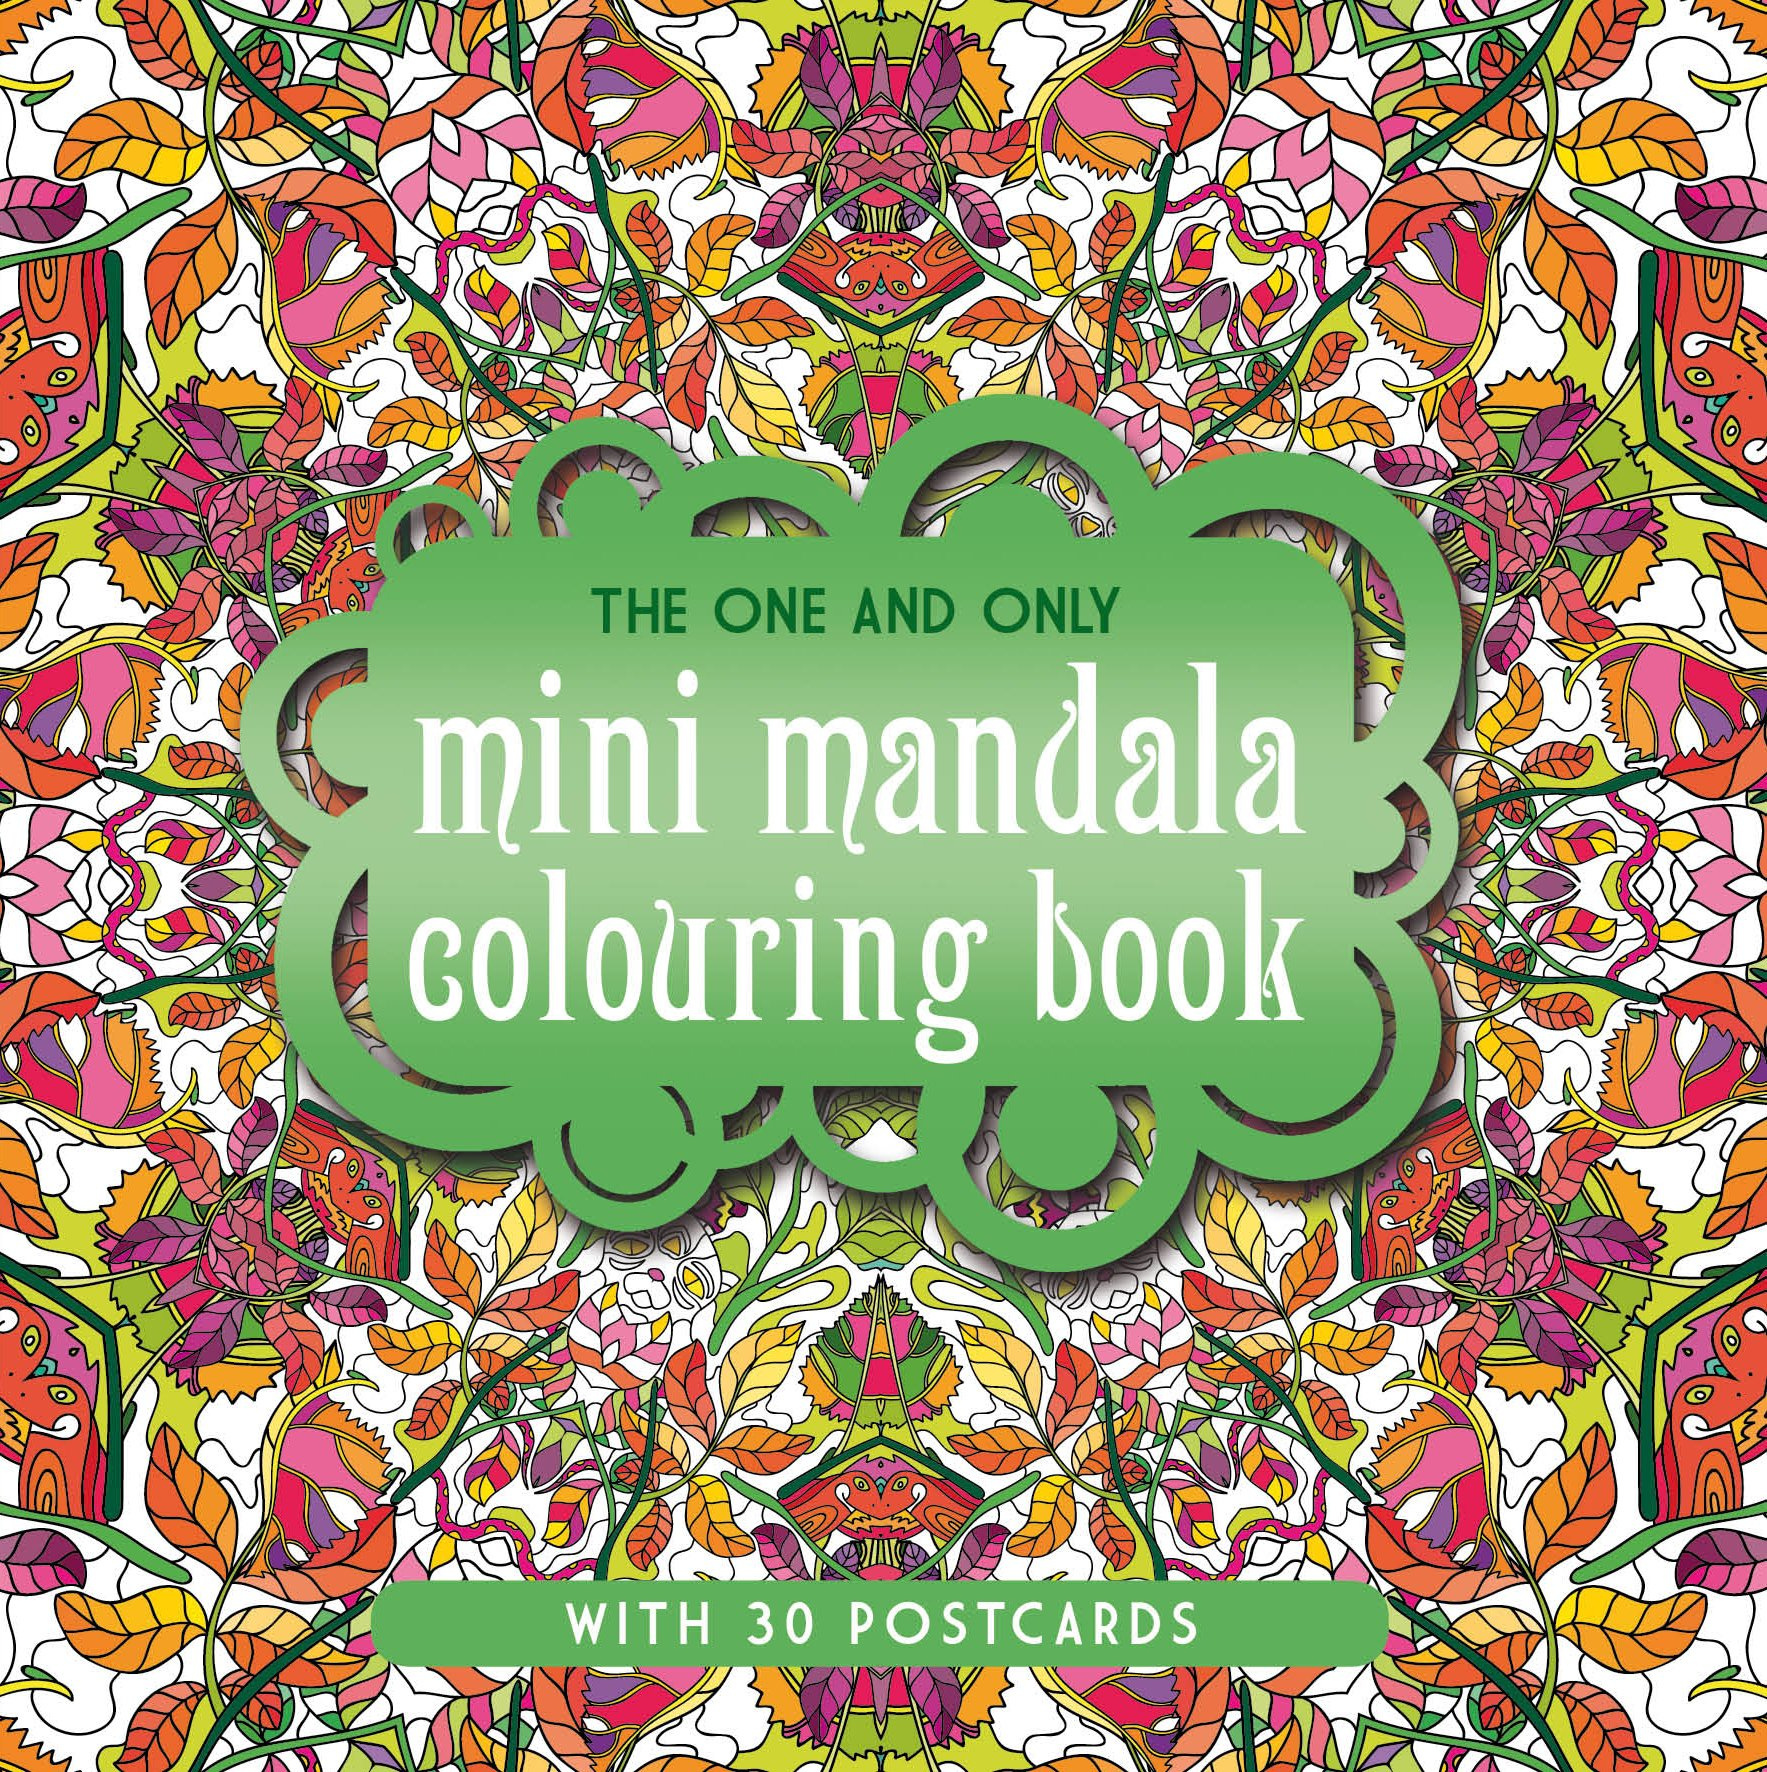 The One and Only Mini Mandala Colouring Book (One and Only Colouring / One and Only Coloring)